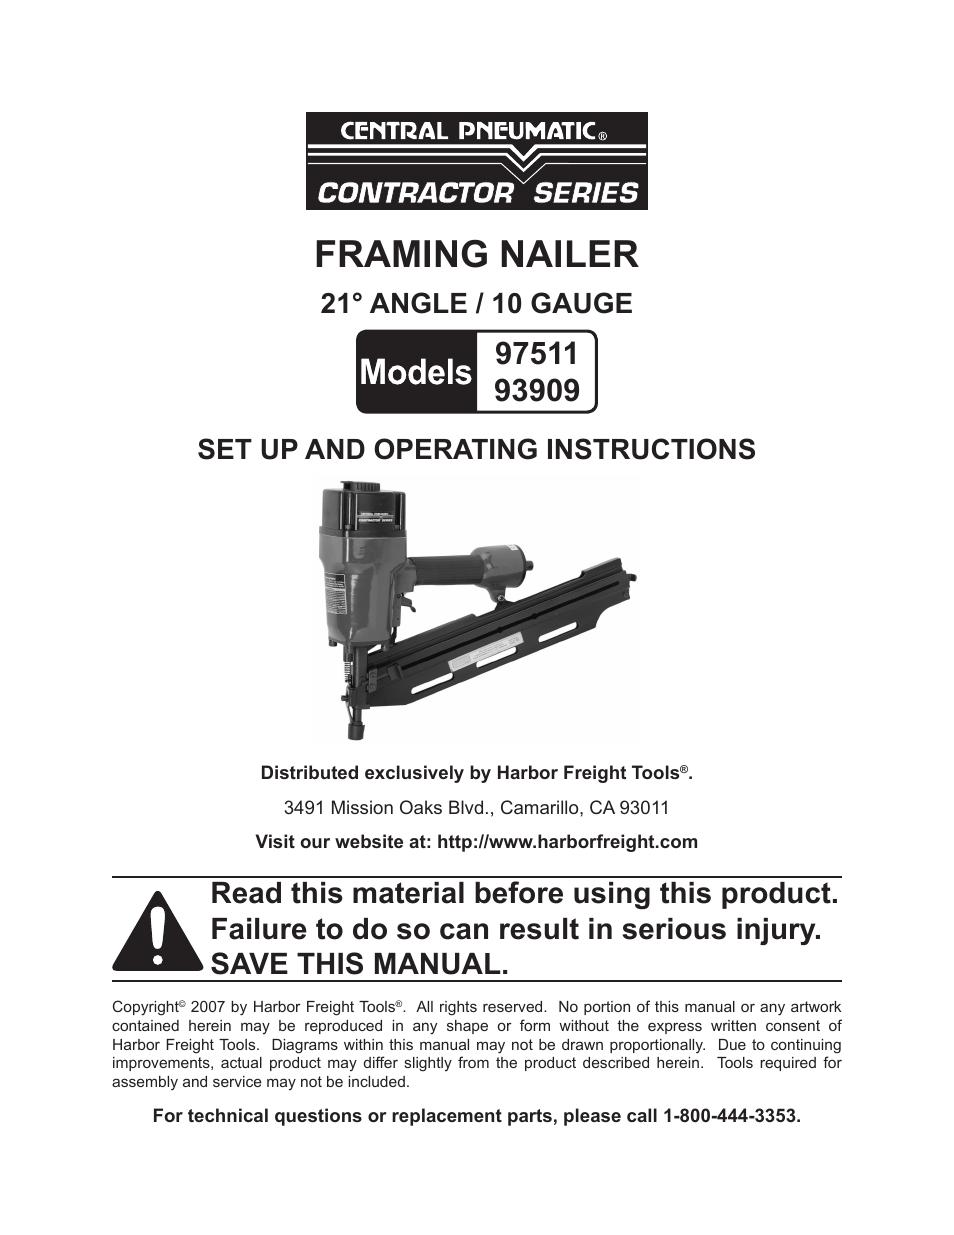 Central Pneumatic Framing Nailer Parts Diagram